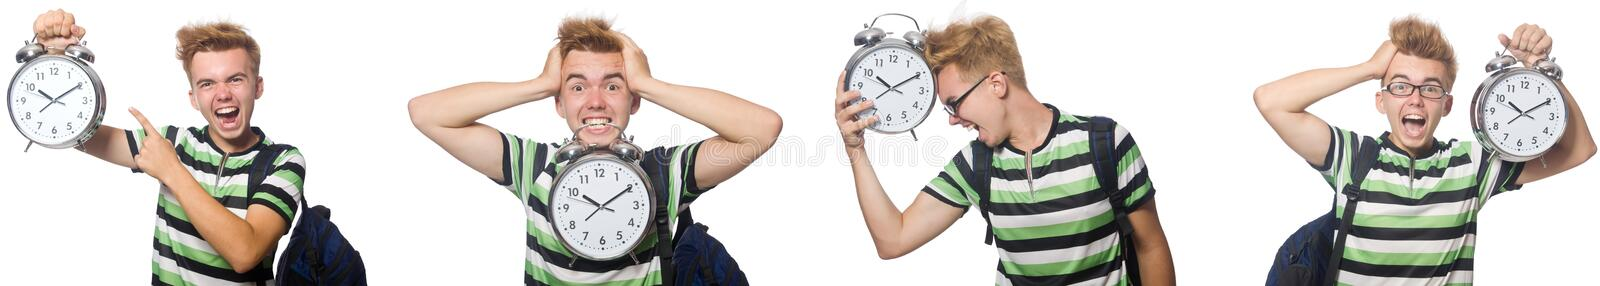 The young student with alarm-clock in time management concept royalty free stock images